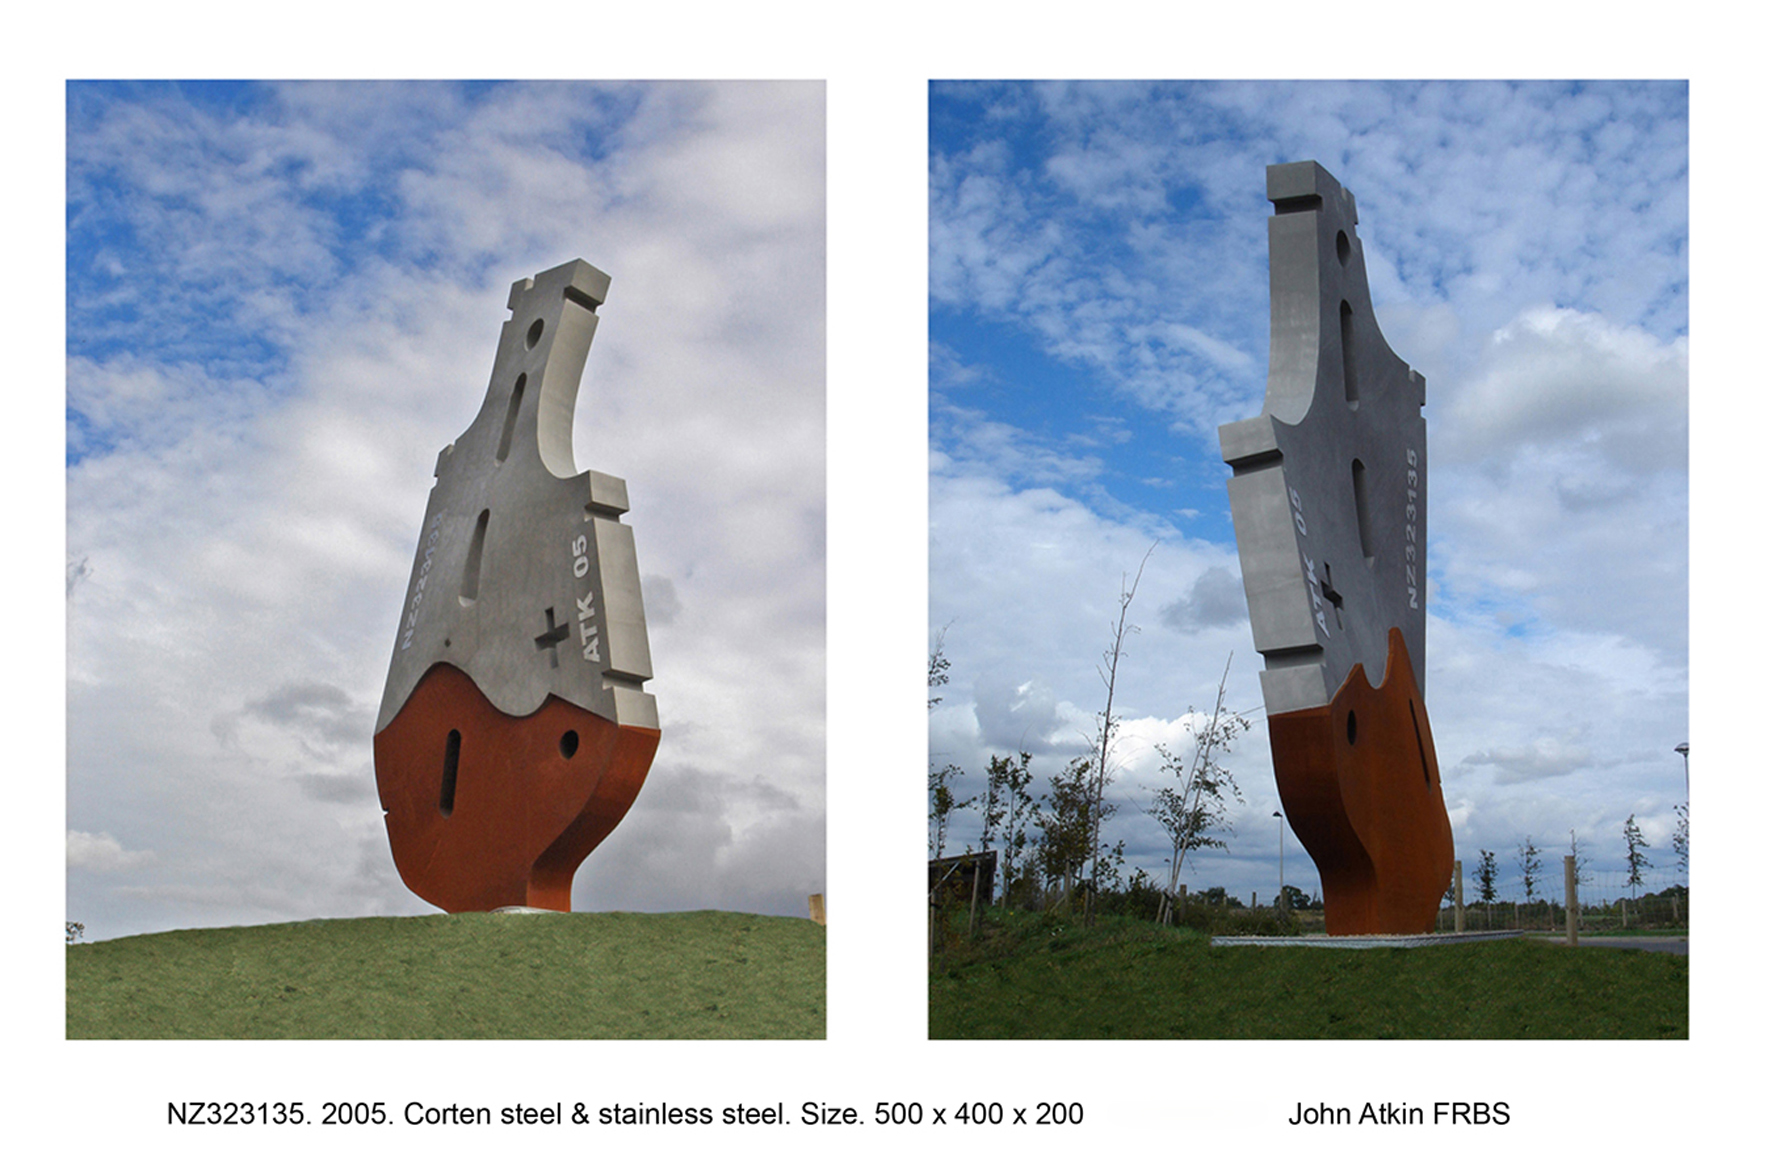 4. NZ323135. 2005. Corten & stainless steel. Hight 5 meters..jpg